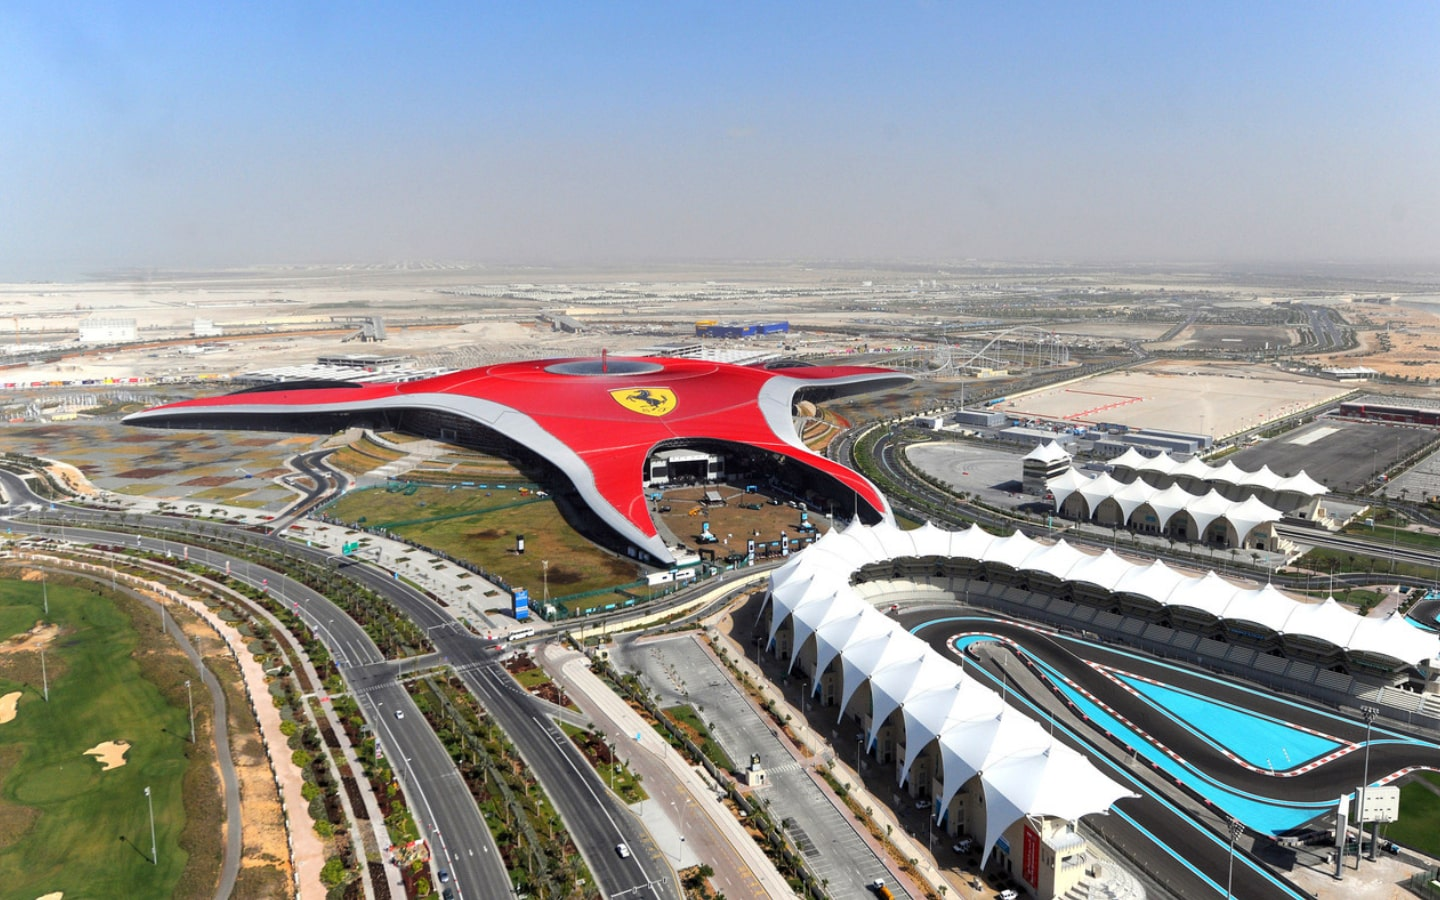 View of the Ferrari World theme park, which is part of the Abu Dhabi Eid hotel deals